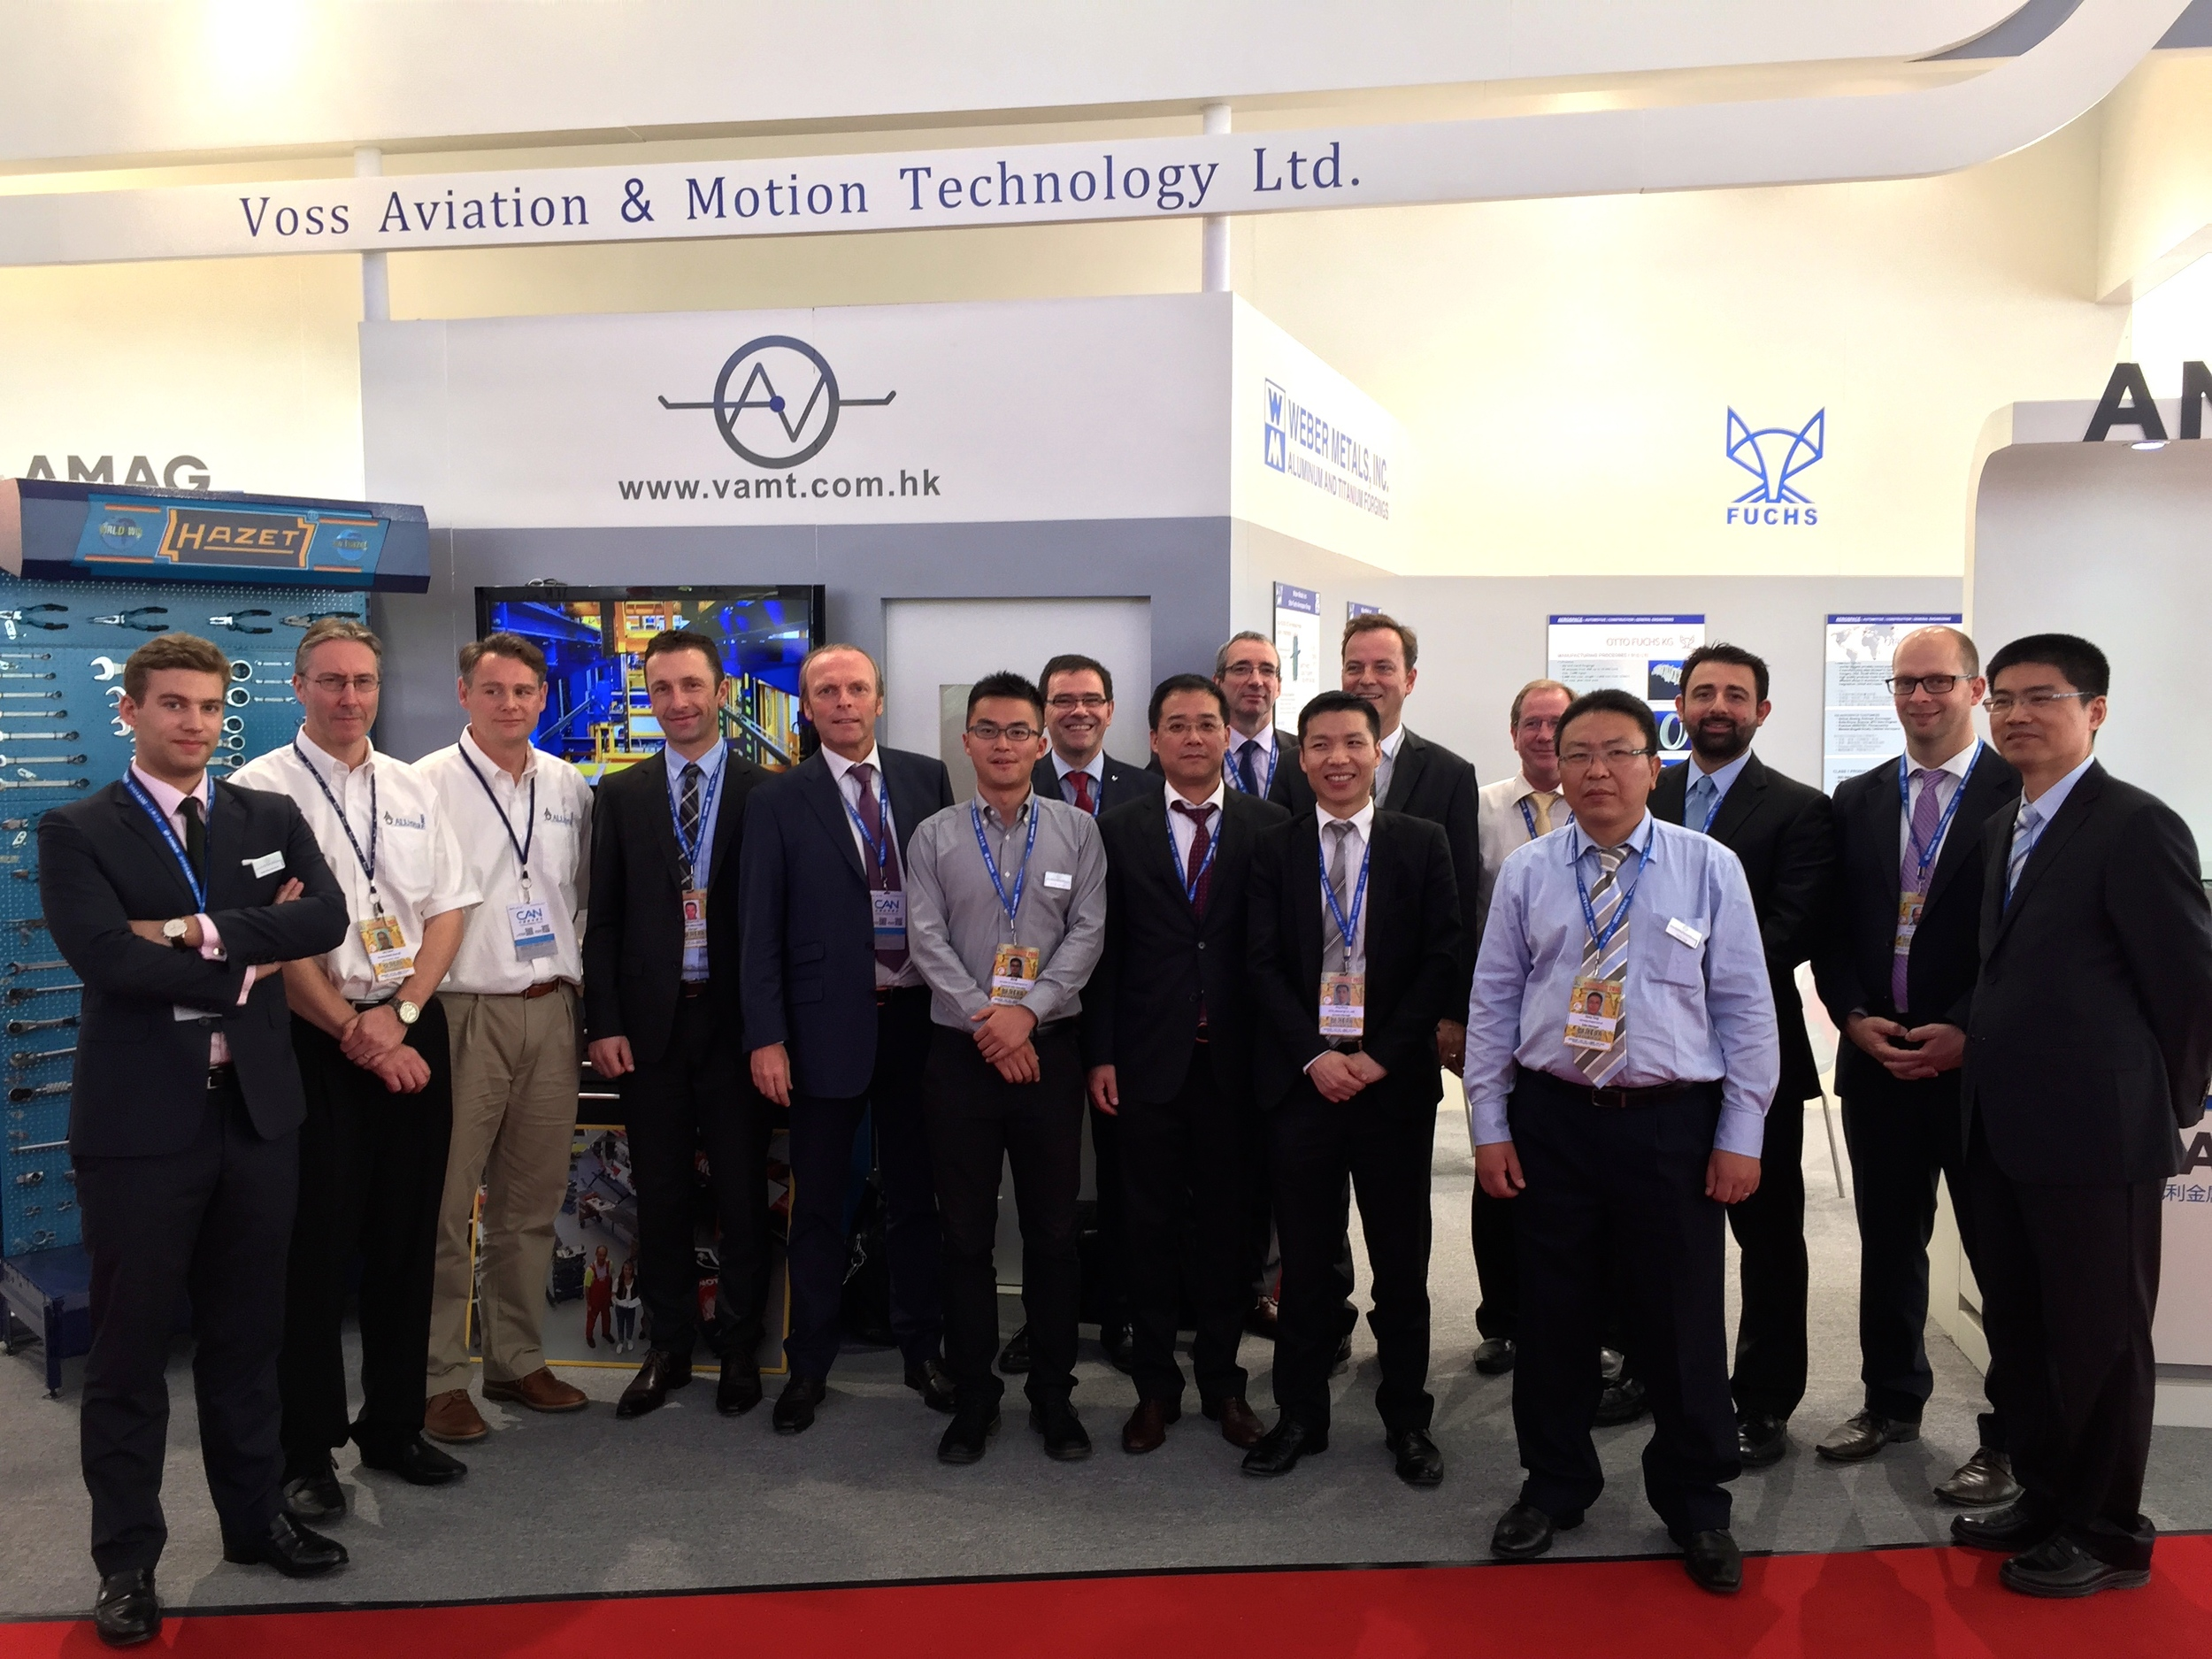 Our Team on site of the Zhuhai Airshow